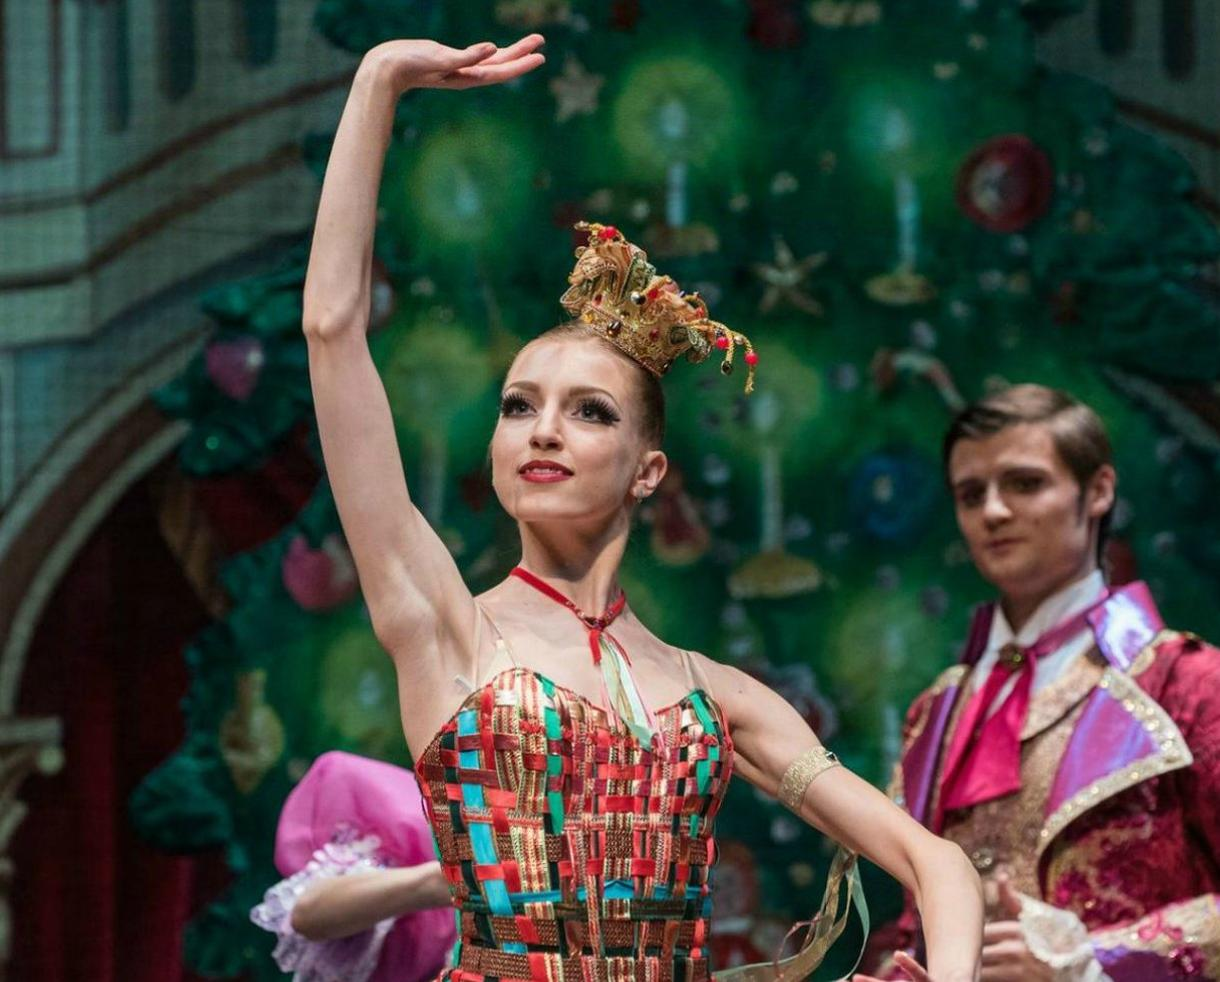 The Moscow Ballet's Great Russian Nutcracker at The Younes and Soraya Nazarian Center for the Performing Arts (formerly the Valley Performing Arts Center)